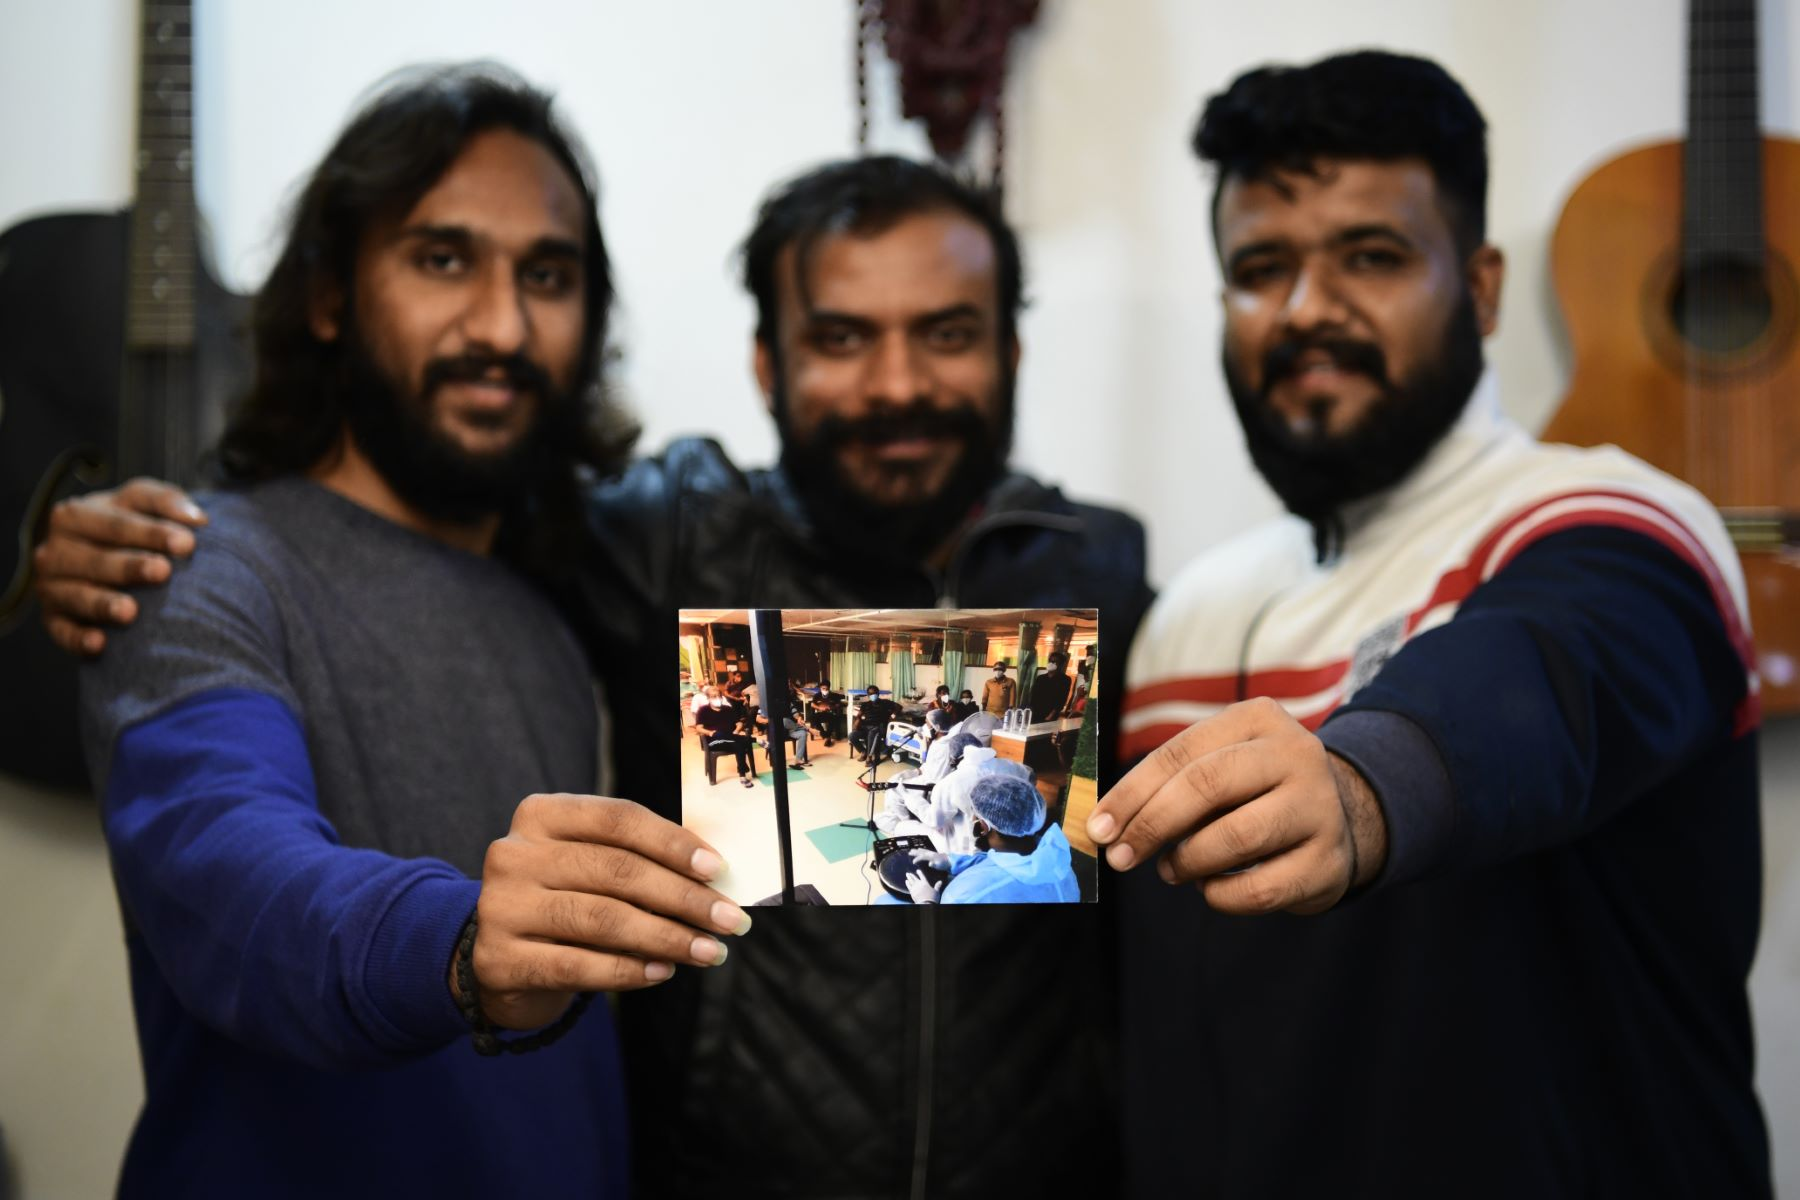 The trio poses with a photo-print reminiscing the moment of playing music for COVID-19 positive patients